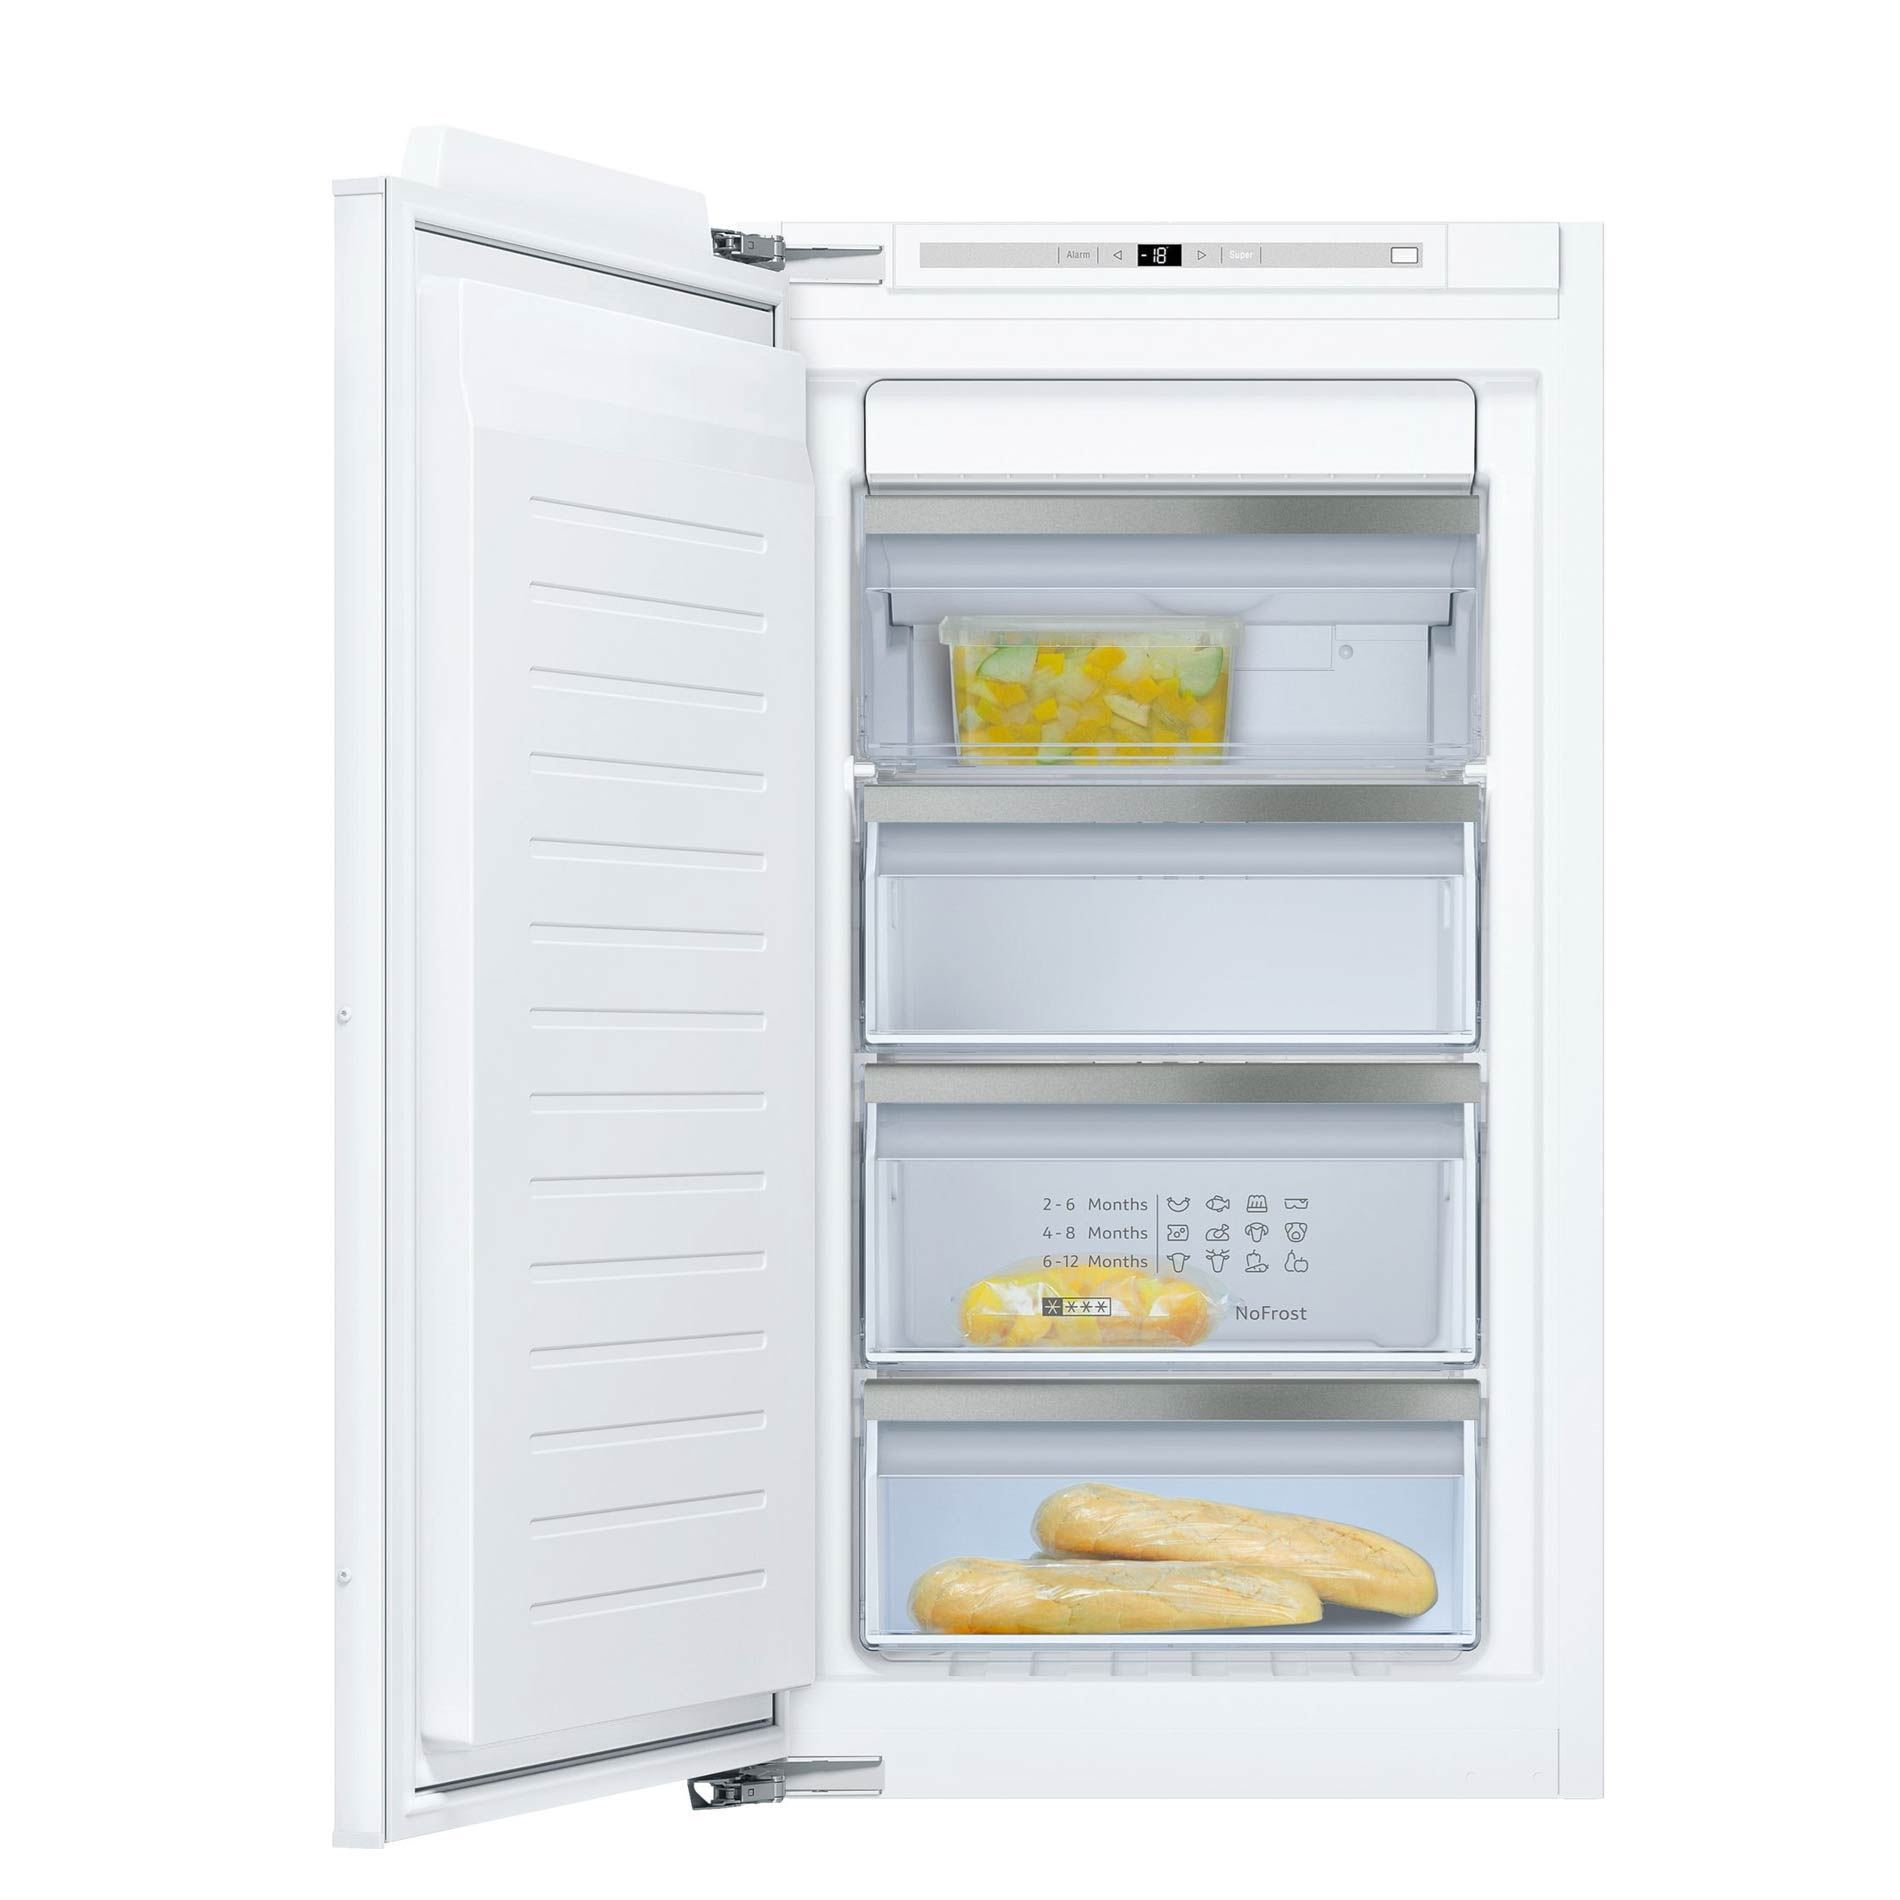 Picture of GI7313E30G Built-in Upright Freezer